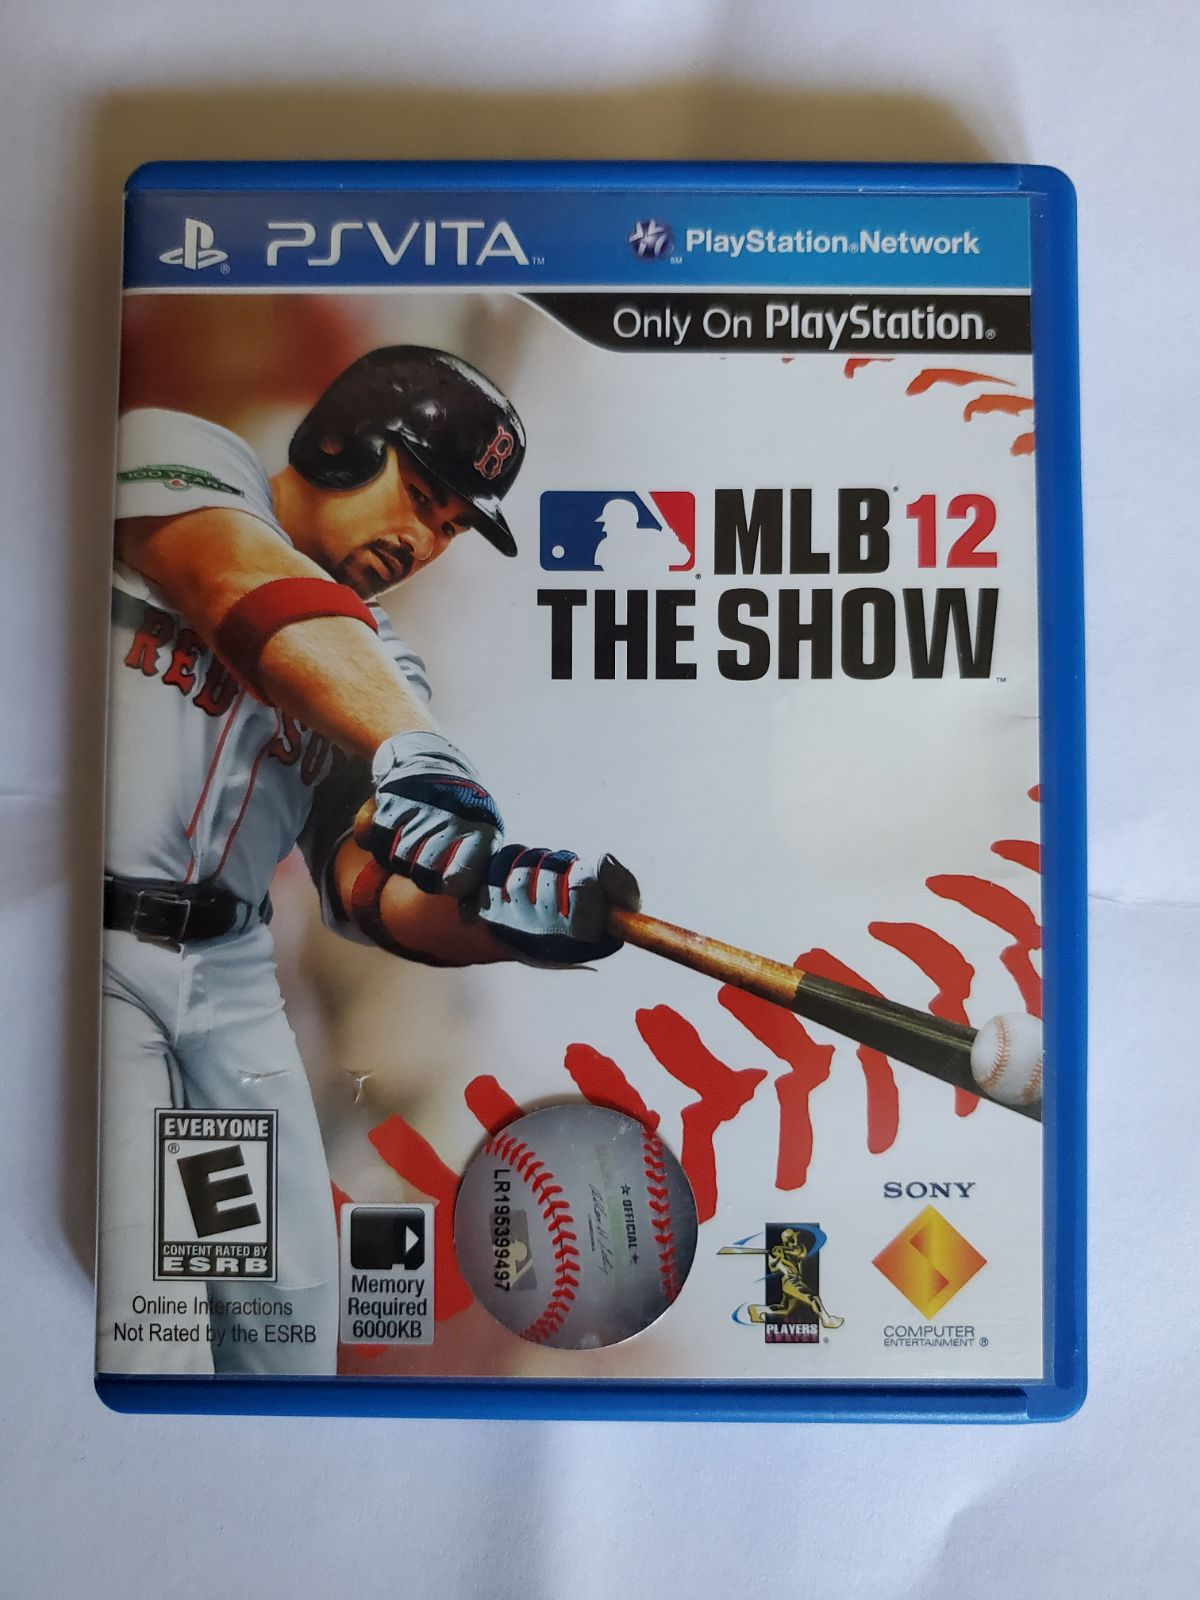 MLB 12 THE SHOW GAME FOR PS Vita